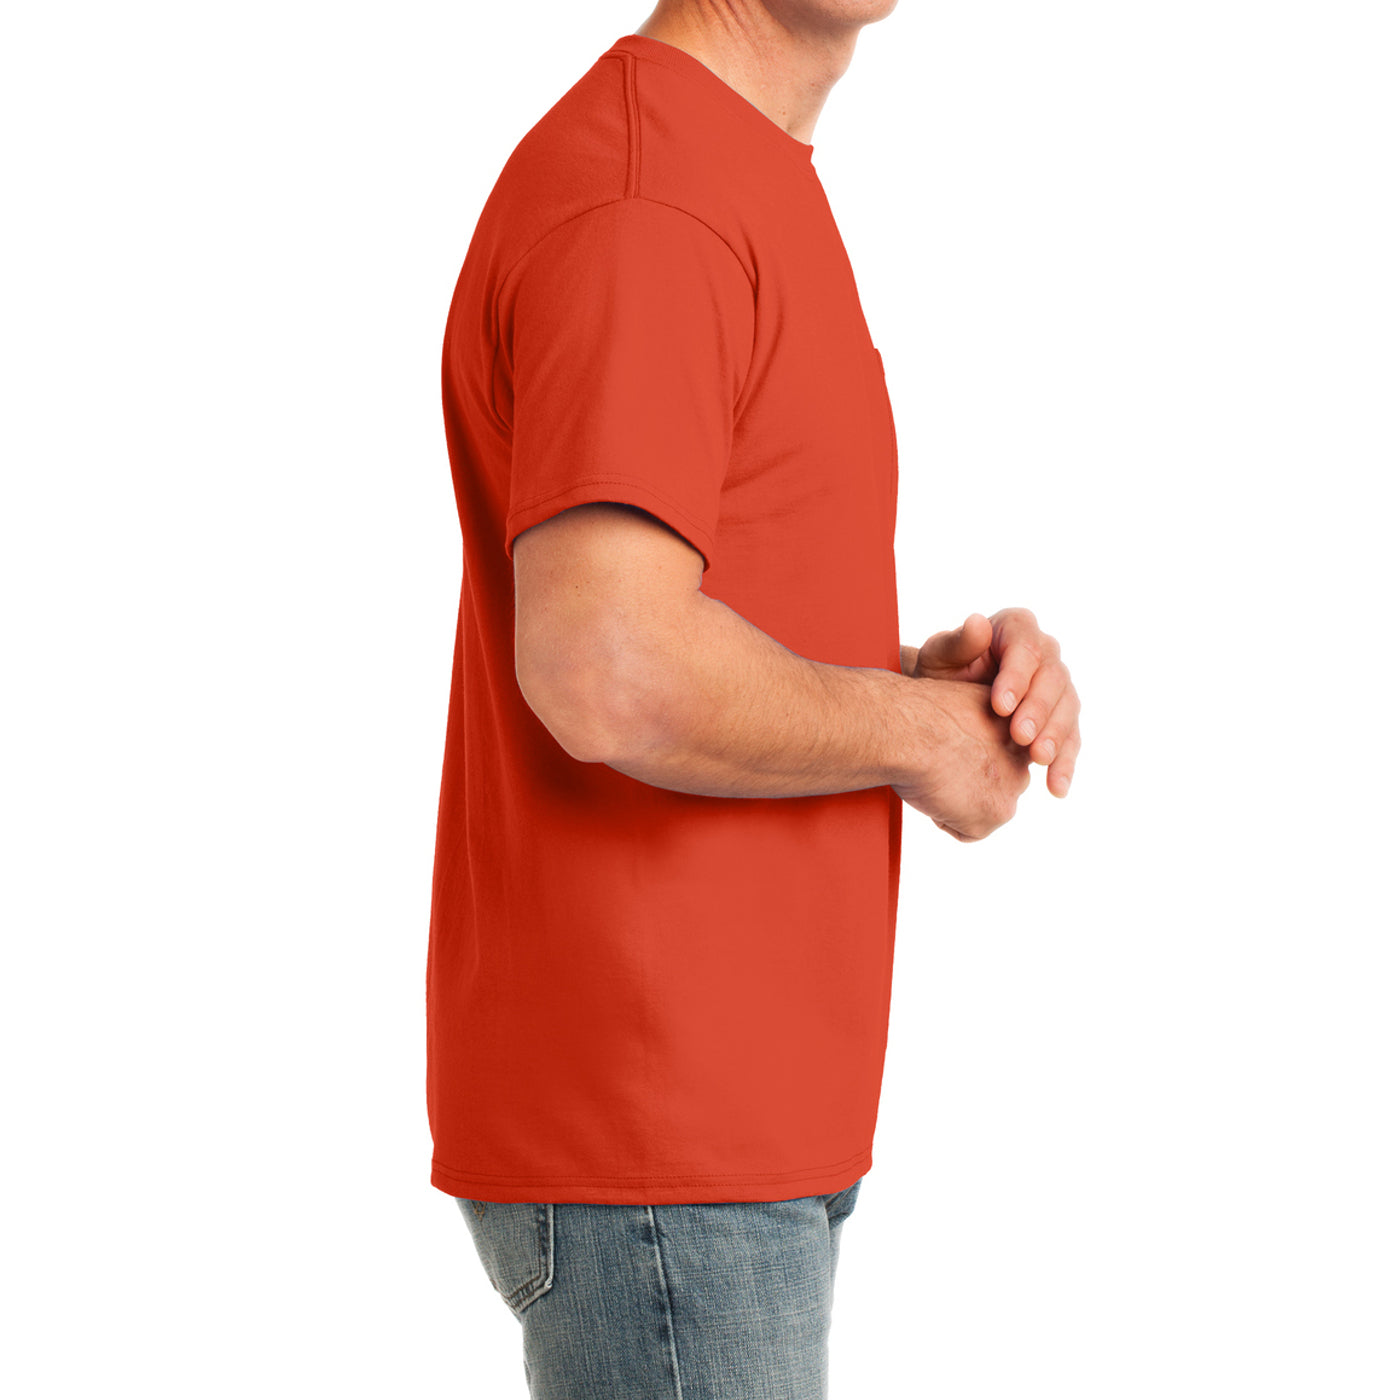 Men's Core Cotton Pocket Tee - Orange - Side